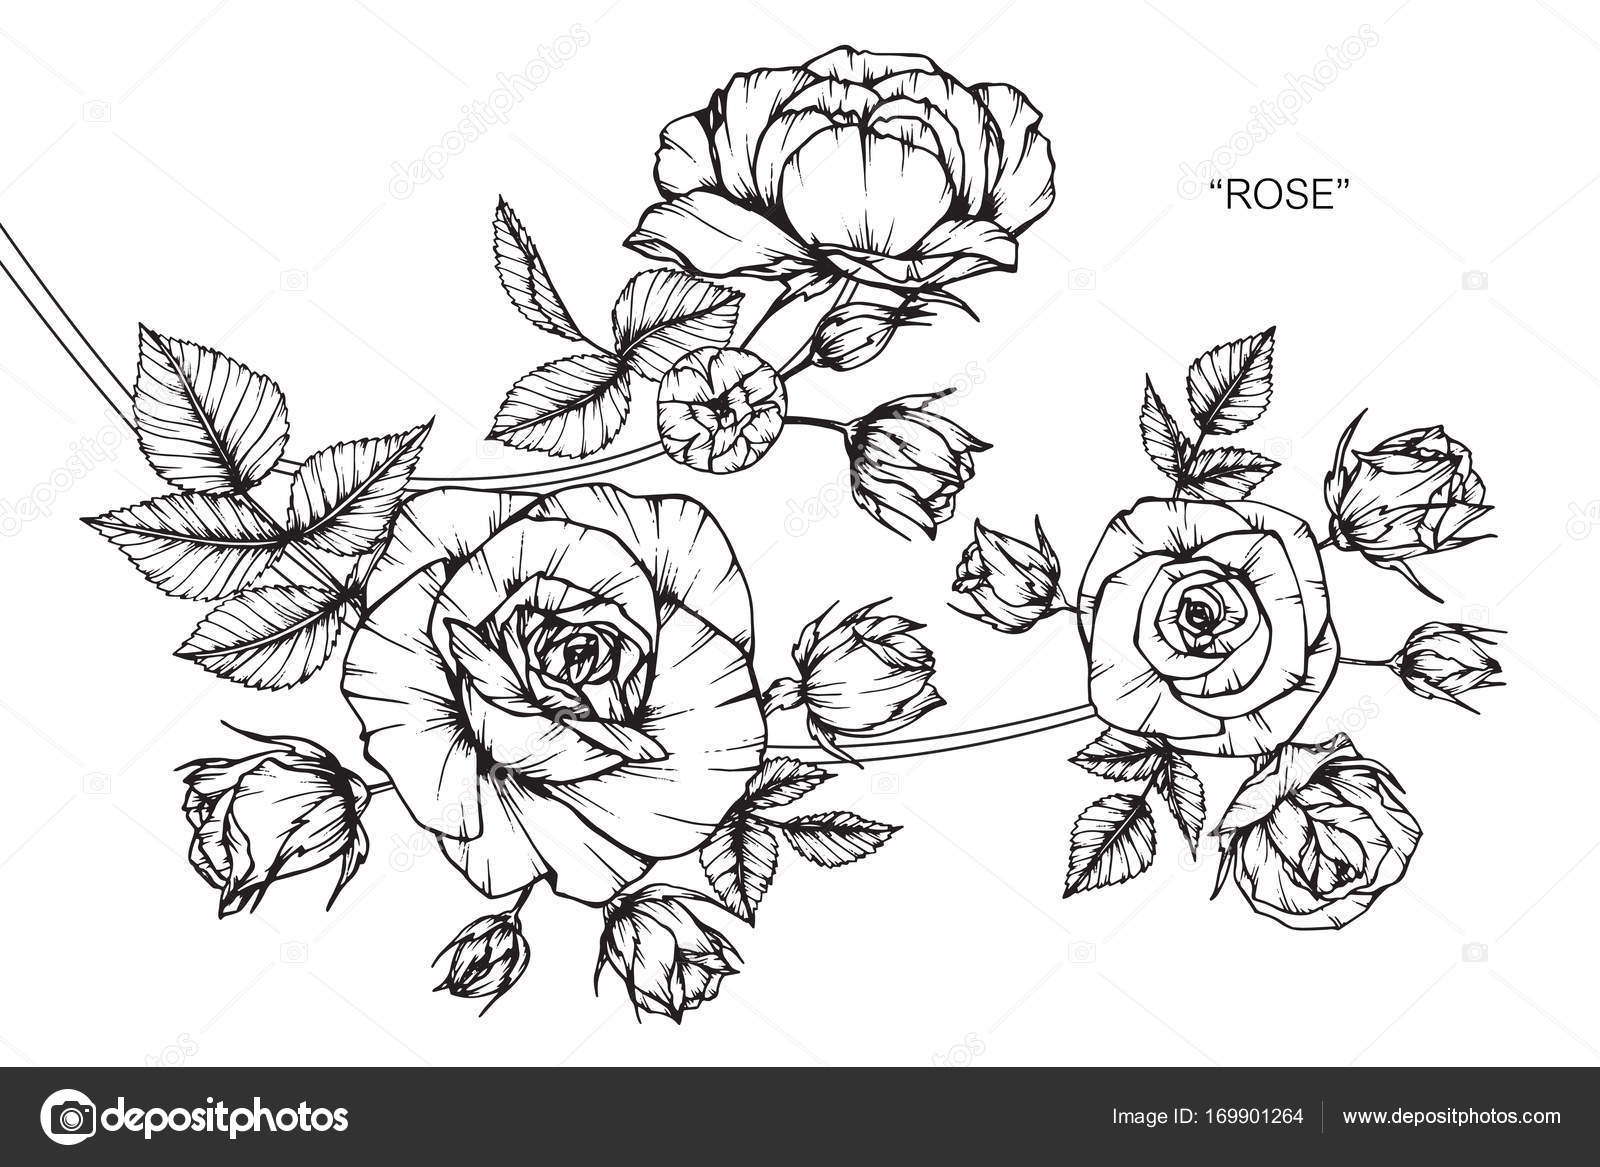 Roses flower drawing sketch black white line art stock vector roses flower drawing sketch black white line art stock vector mightylinksfo Gallery